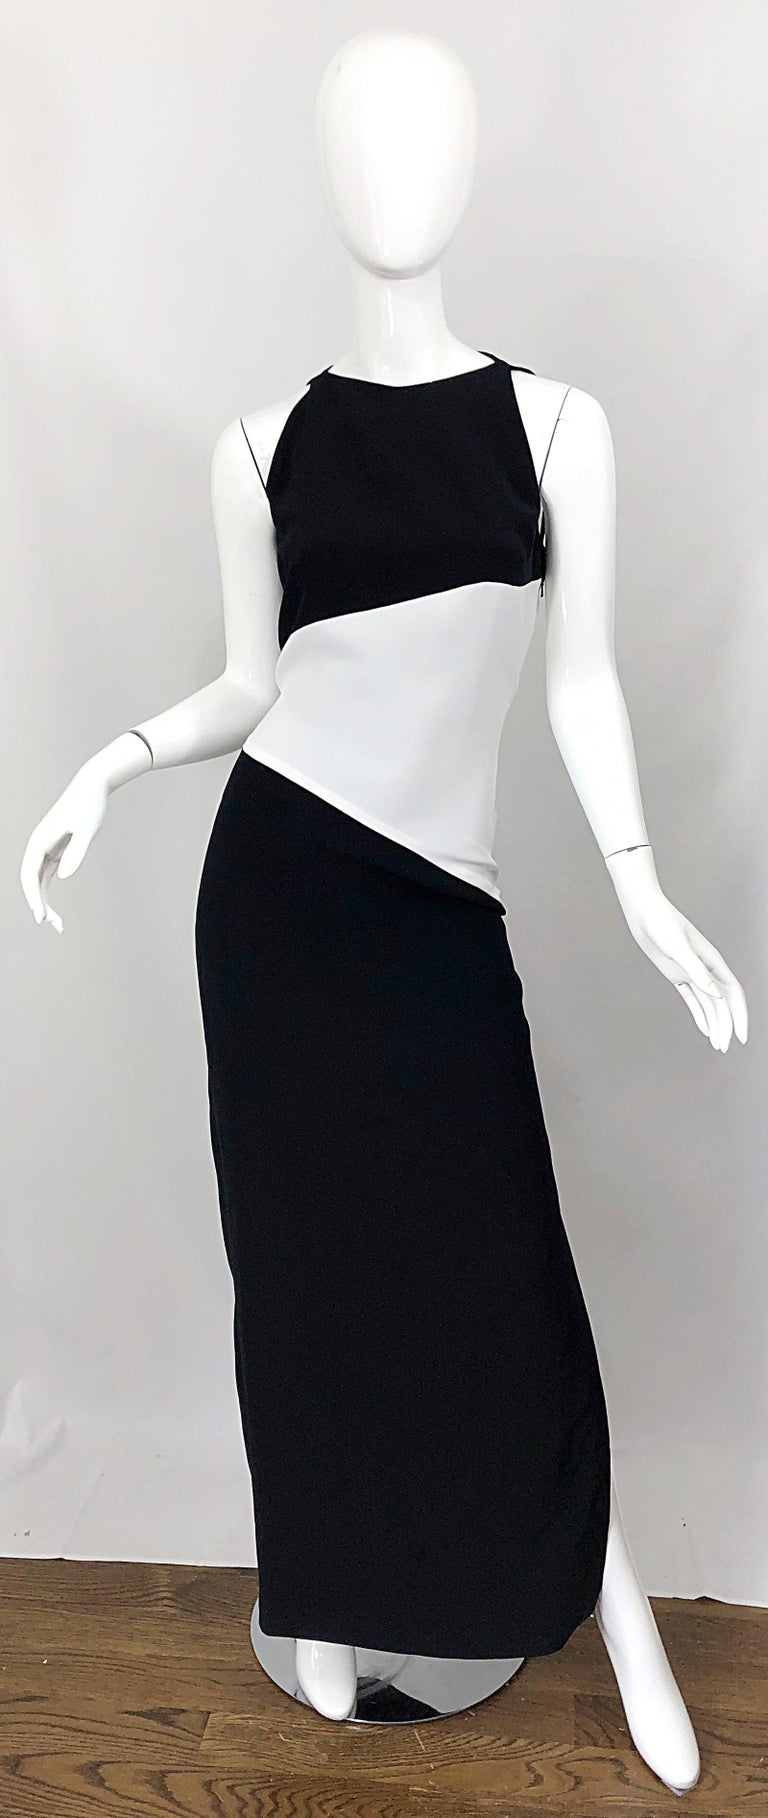 NWT Vintage Bob Mackie Size 8 Black and White Color Block Sleeveless Gown Dress For Sale 10